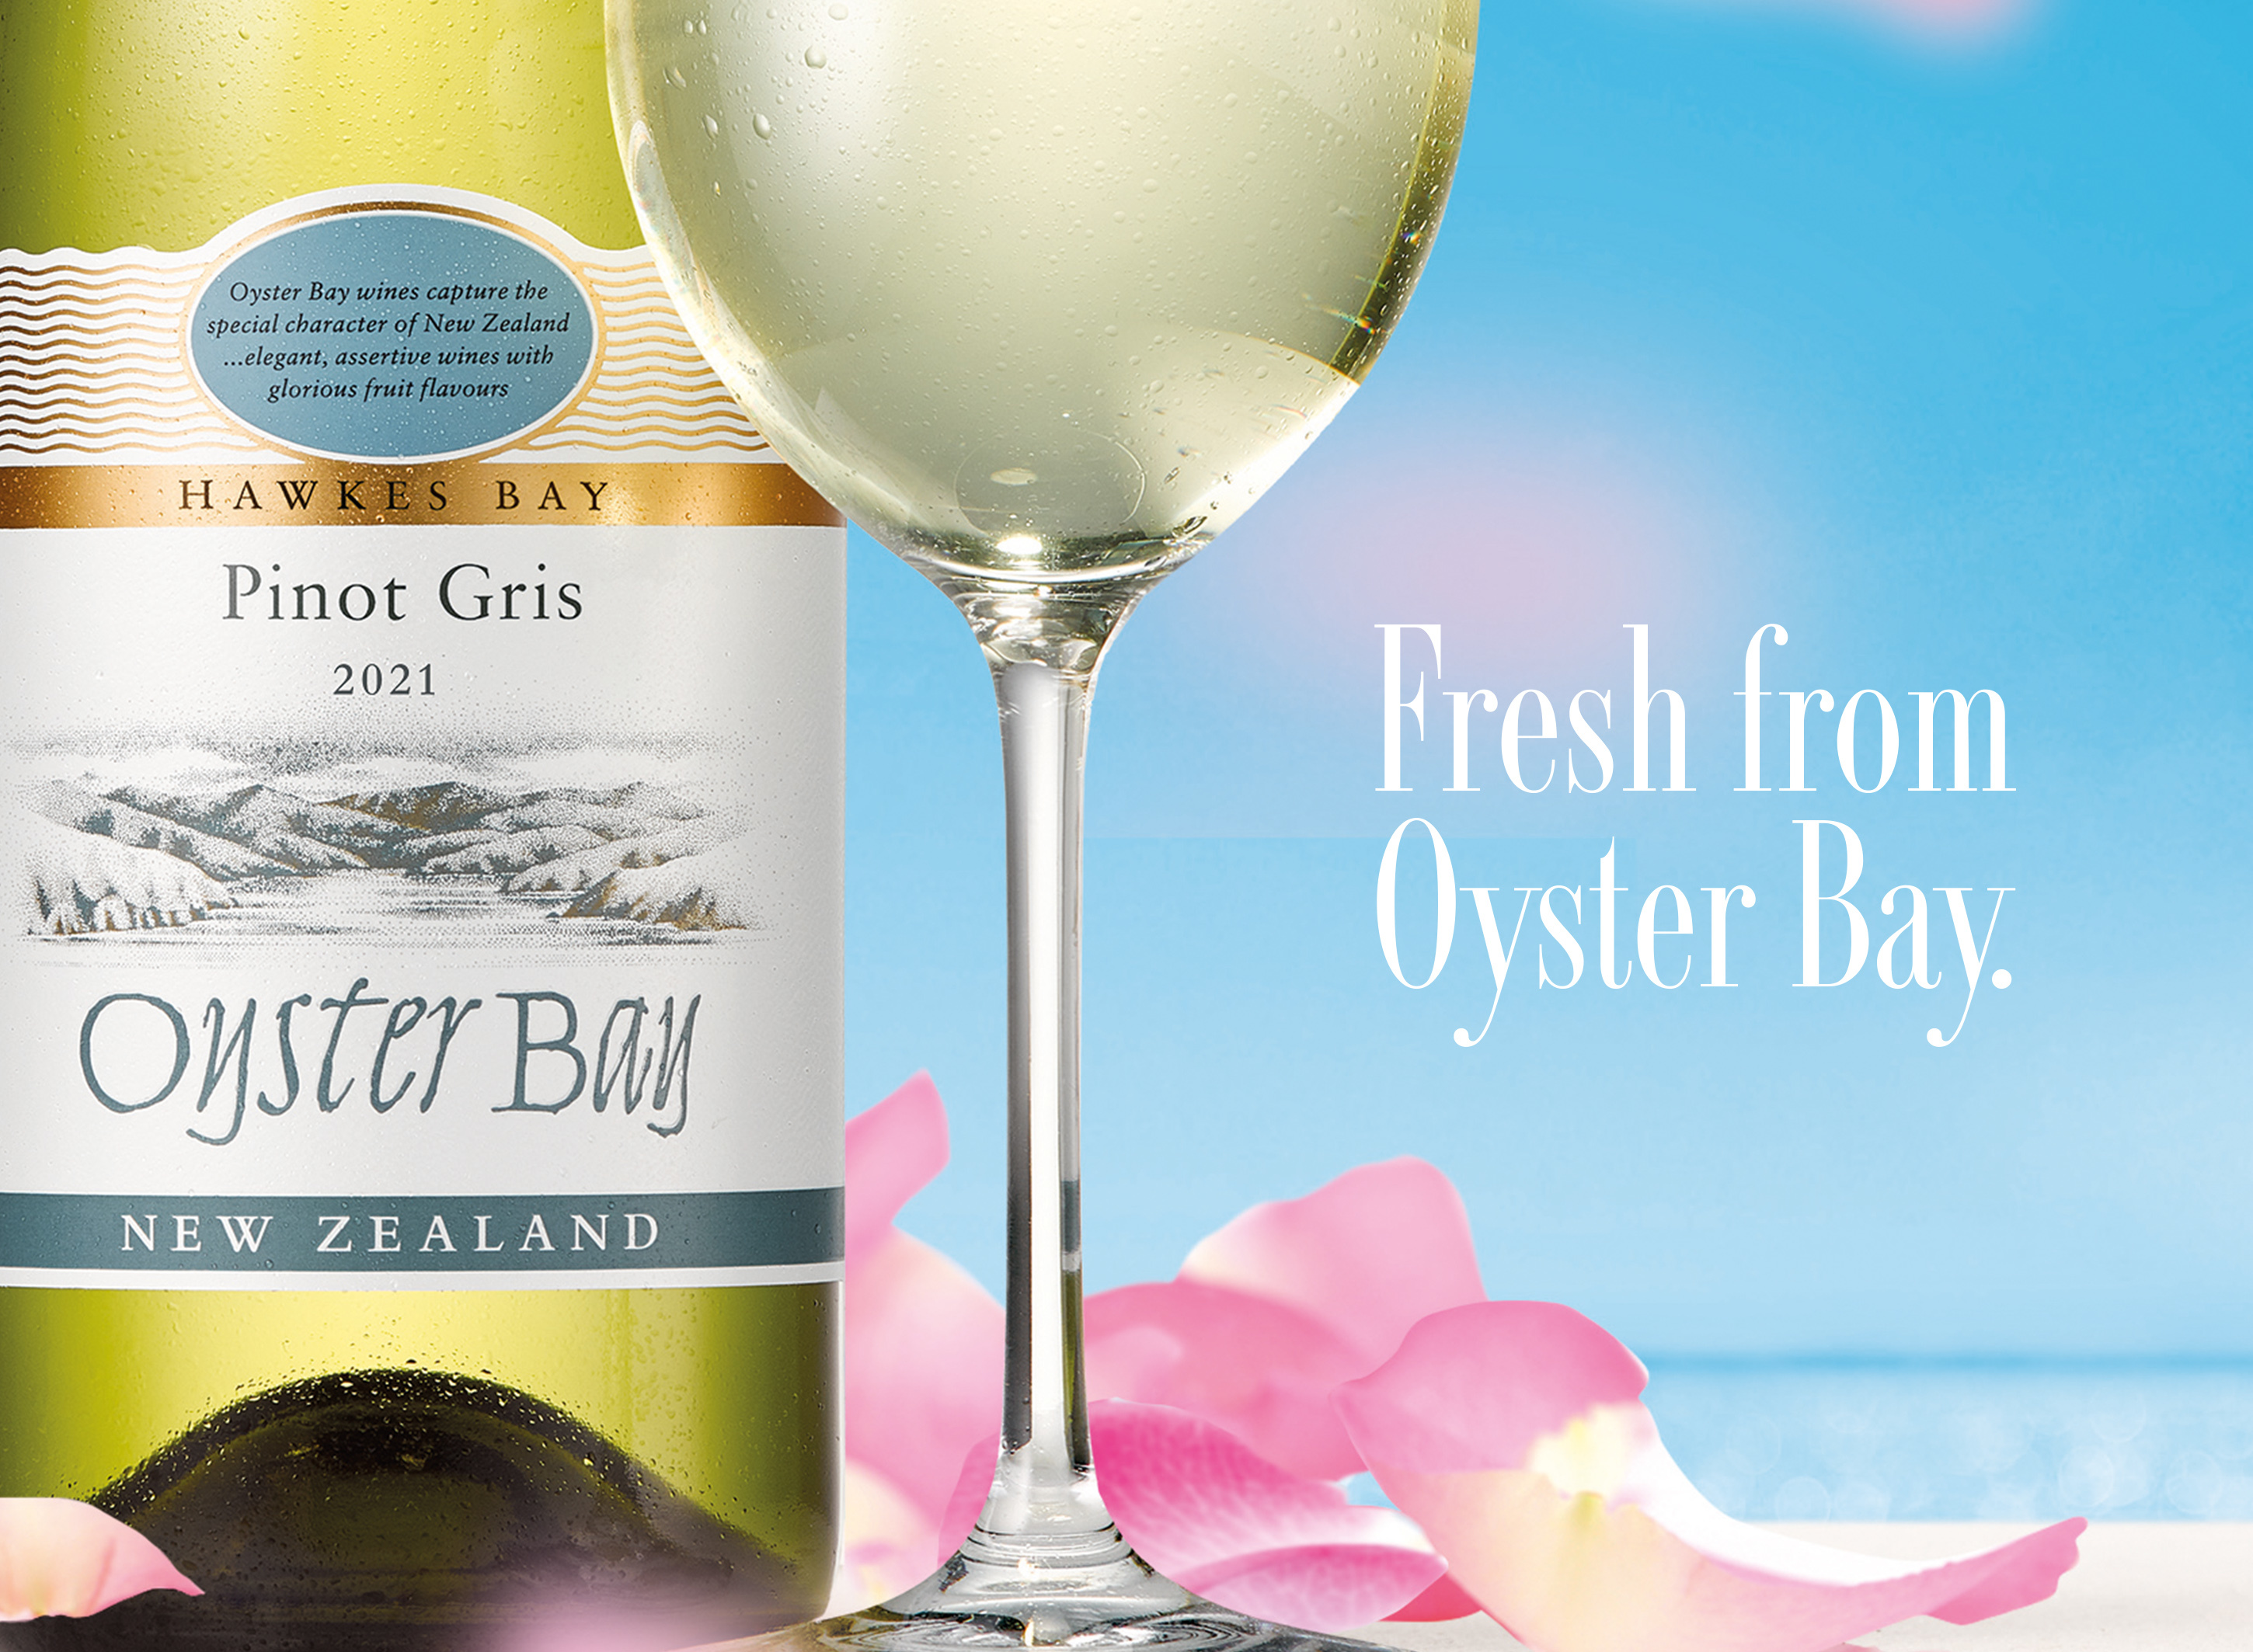 2021 oyster bay hawkes bay pinot gris bottle glass tagline